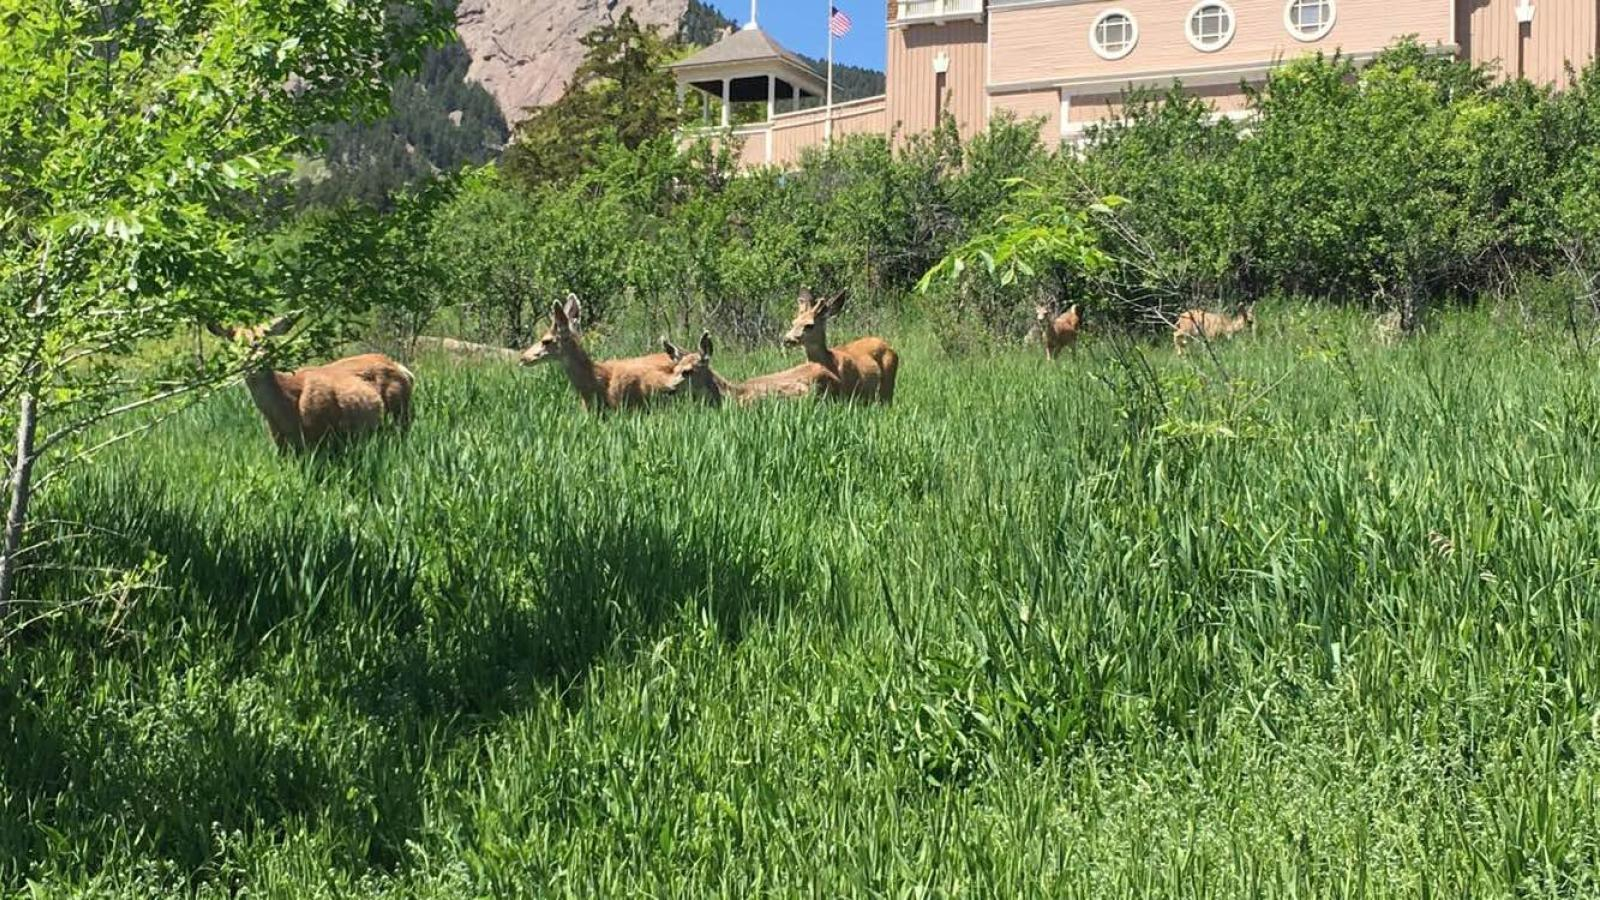 a small group of deer